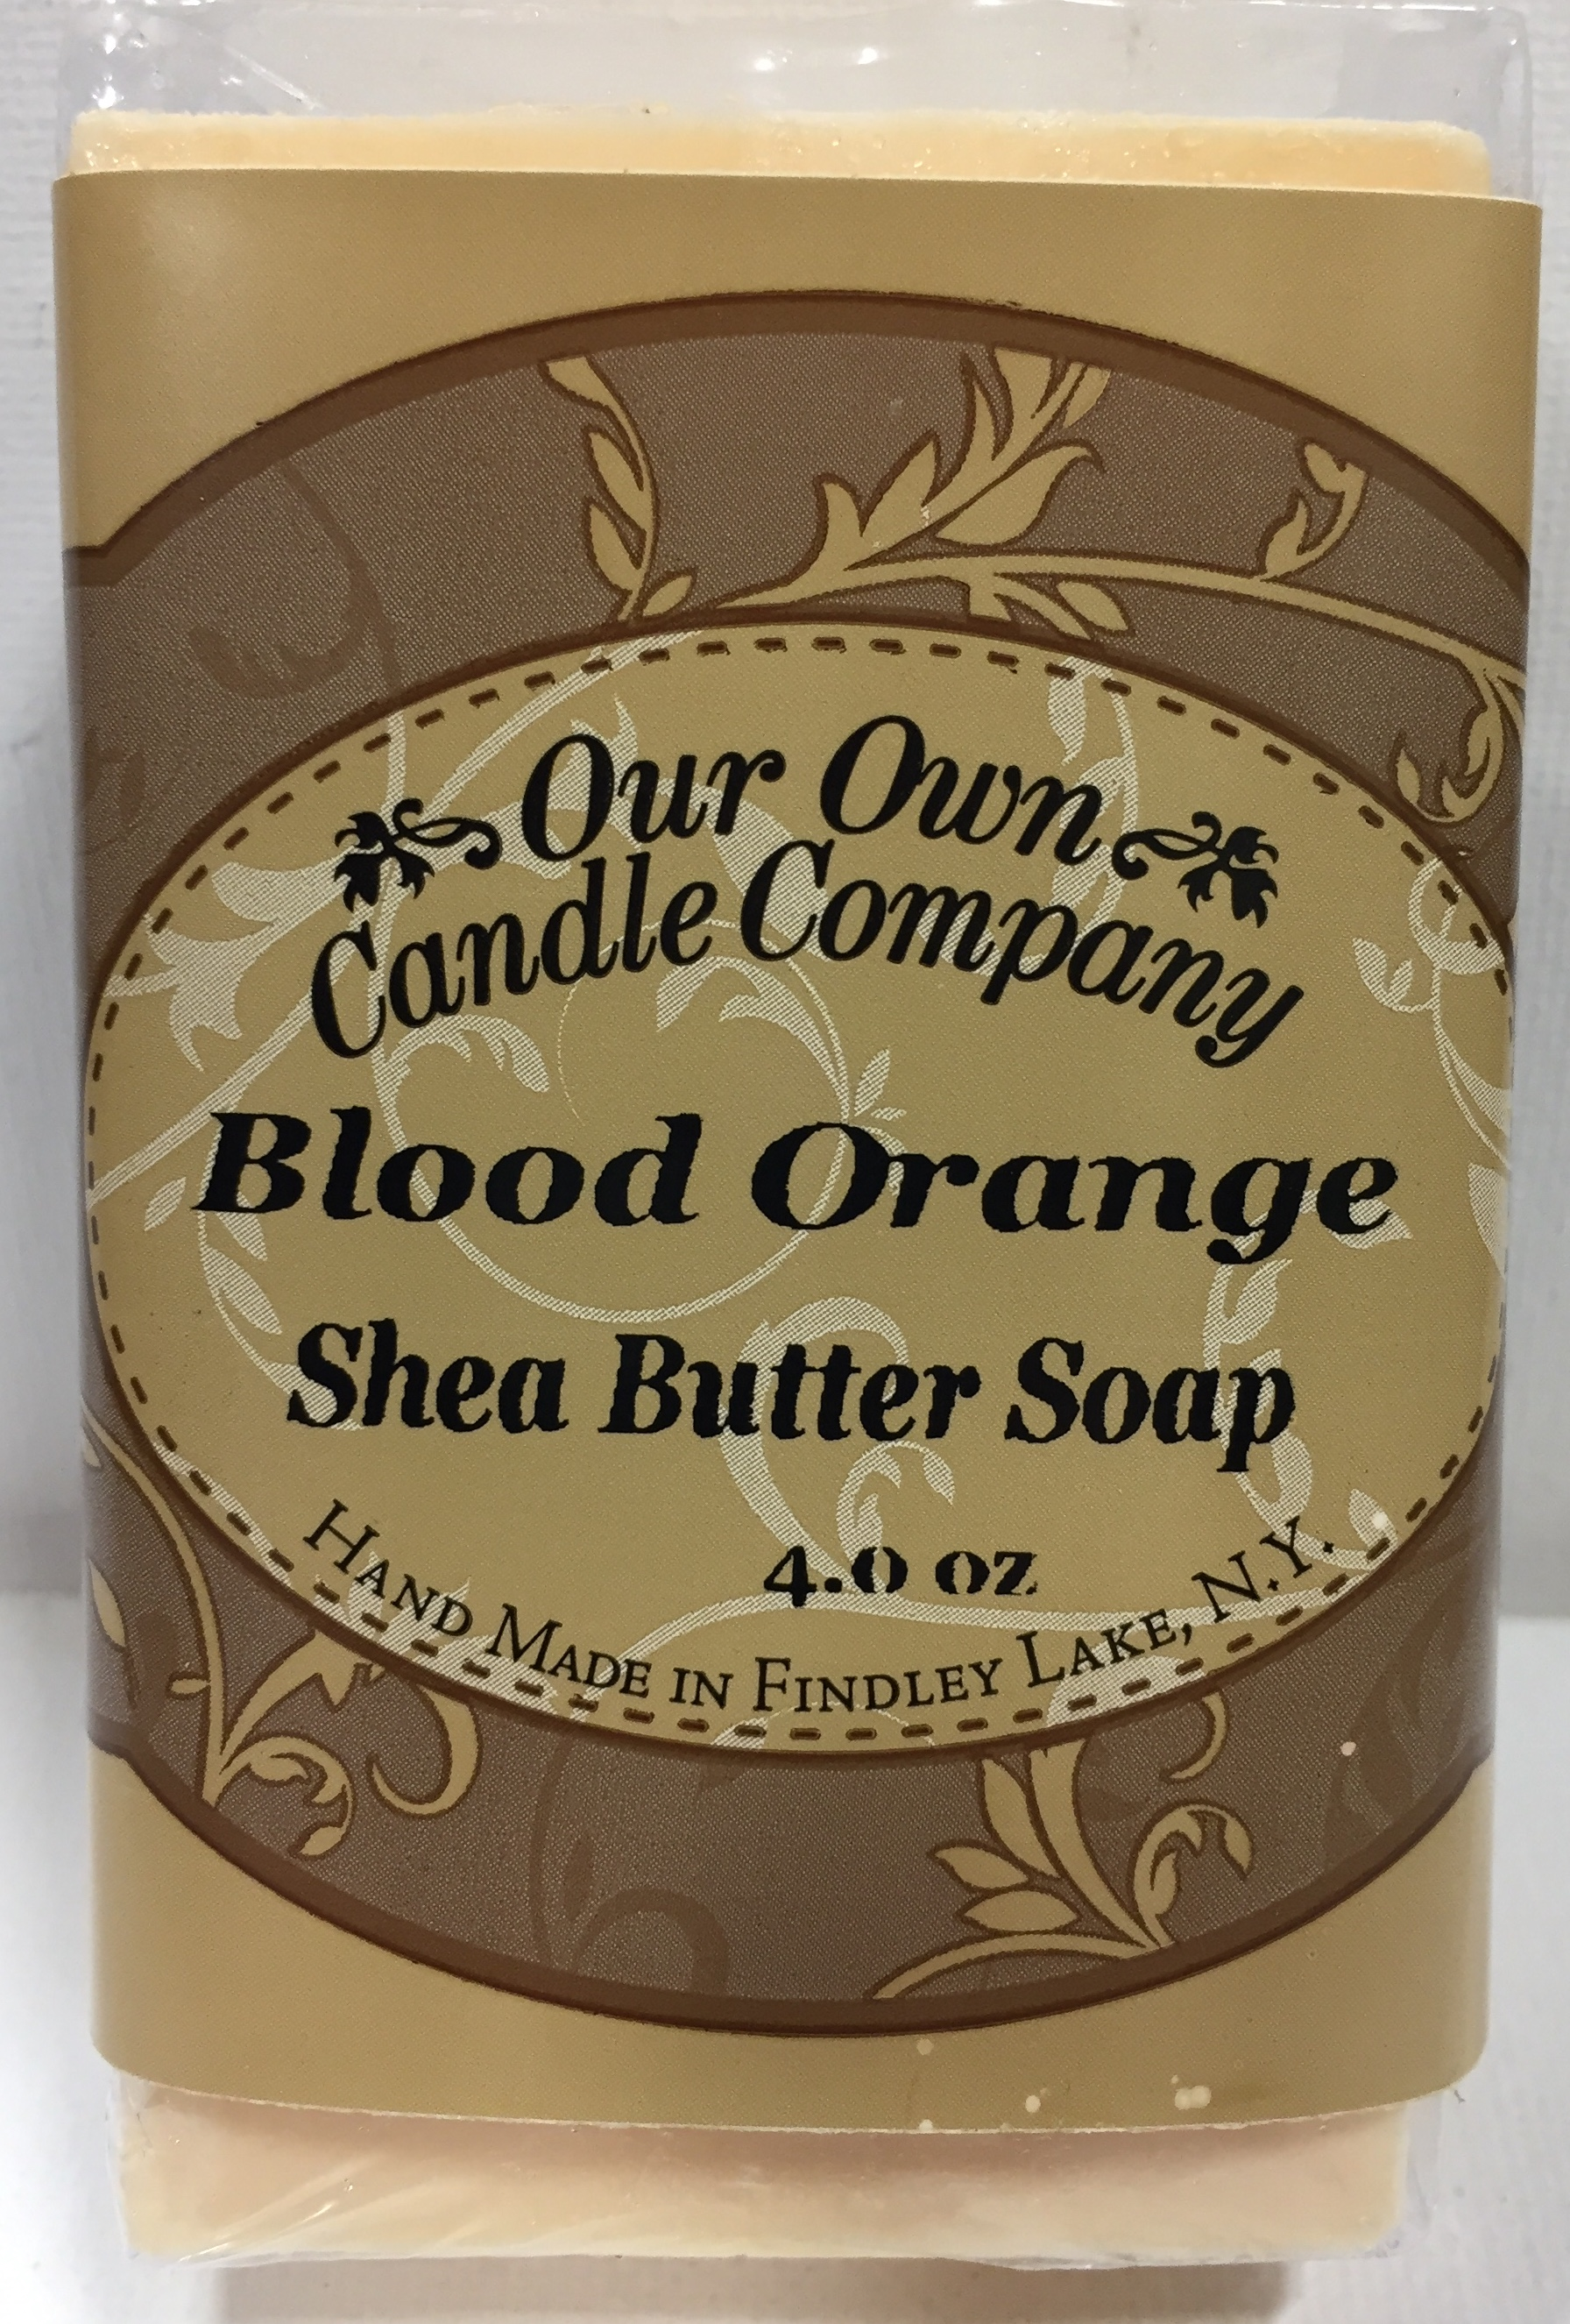 BLOOD ORANGE SHEA BUTTER SOAP 4 OZ UPC# 813542026540